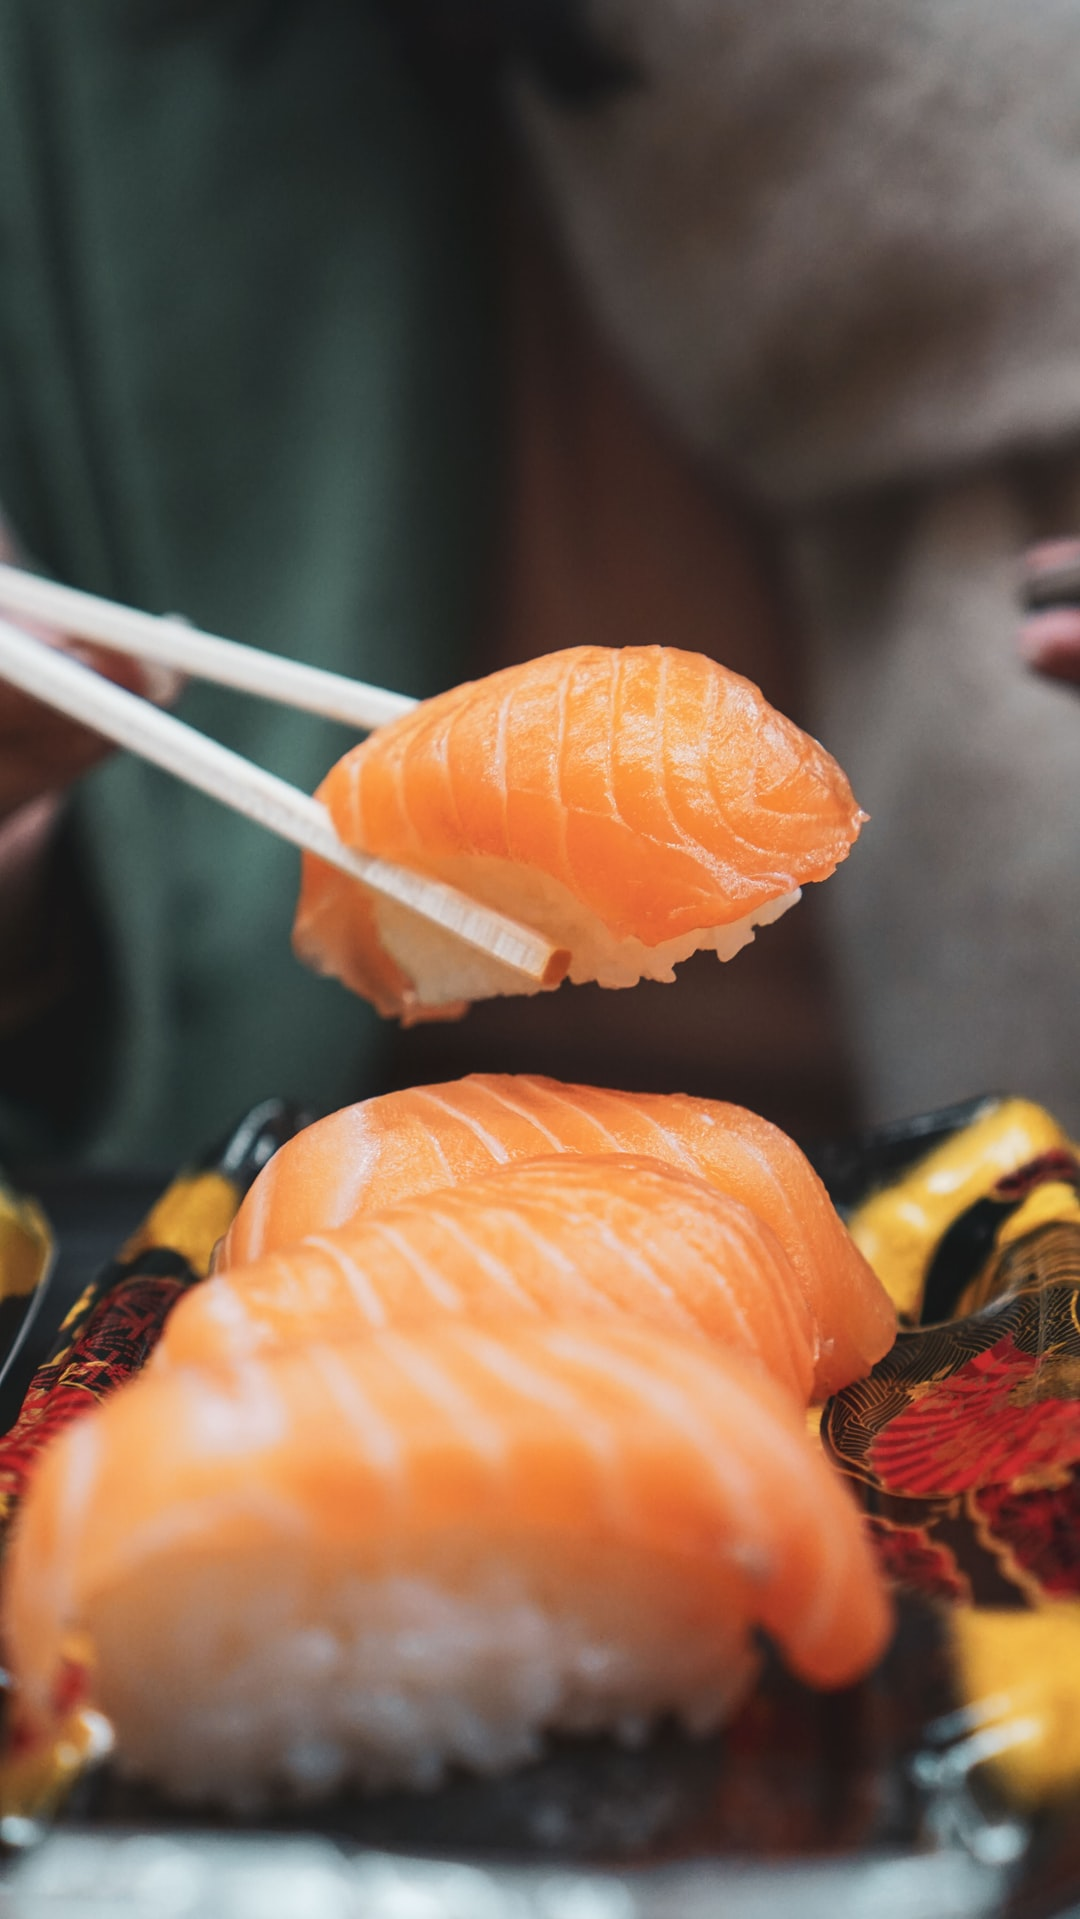 How to Eat Sushi – According to Sushi Chefs